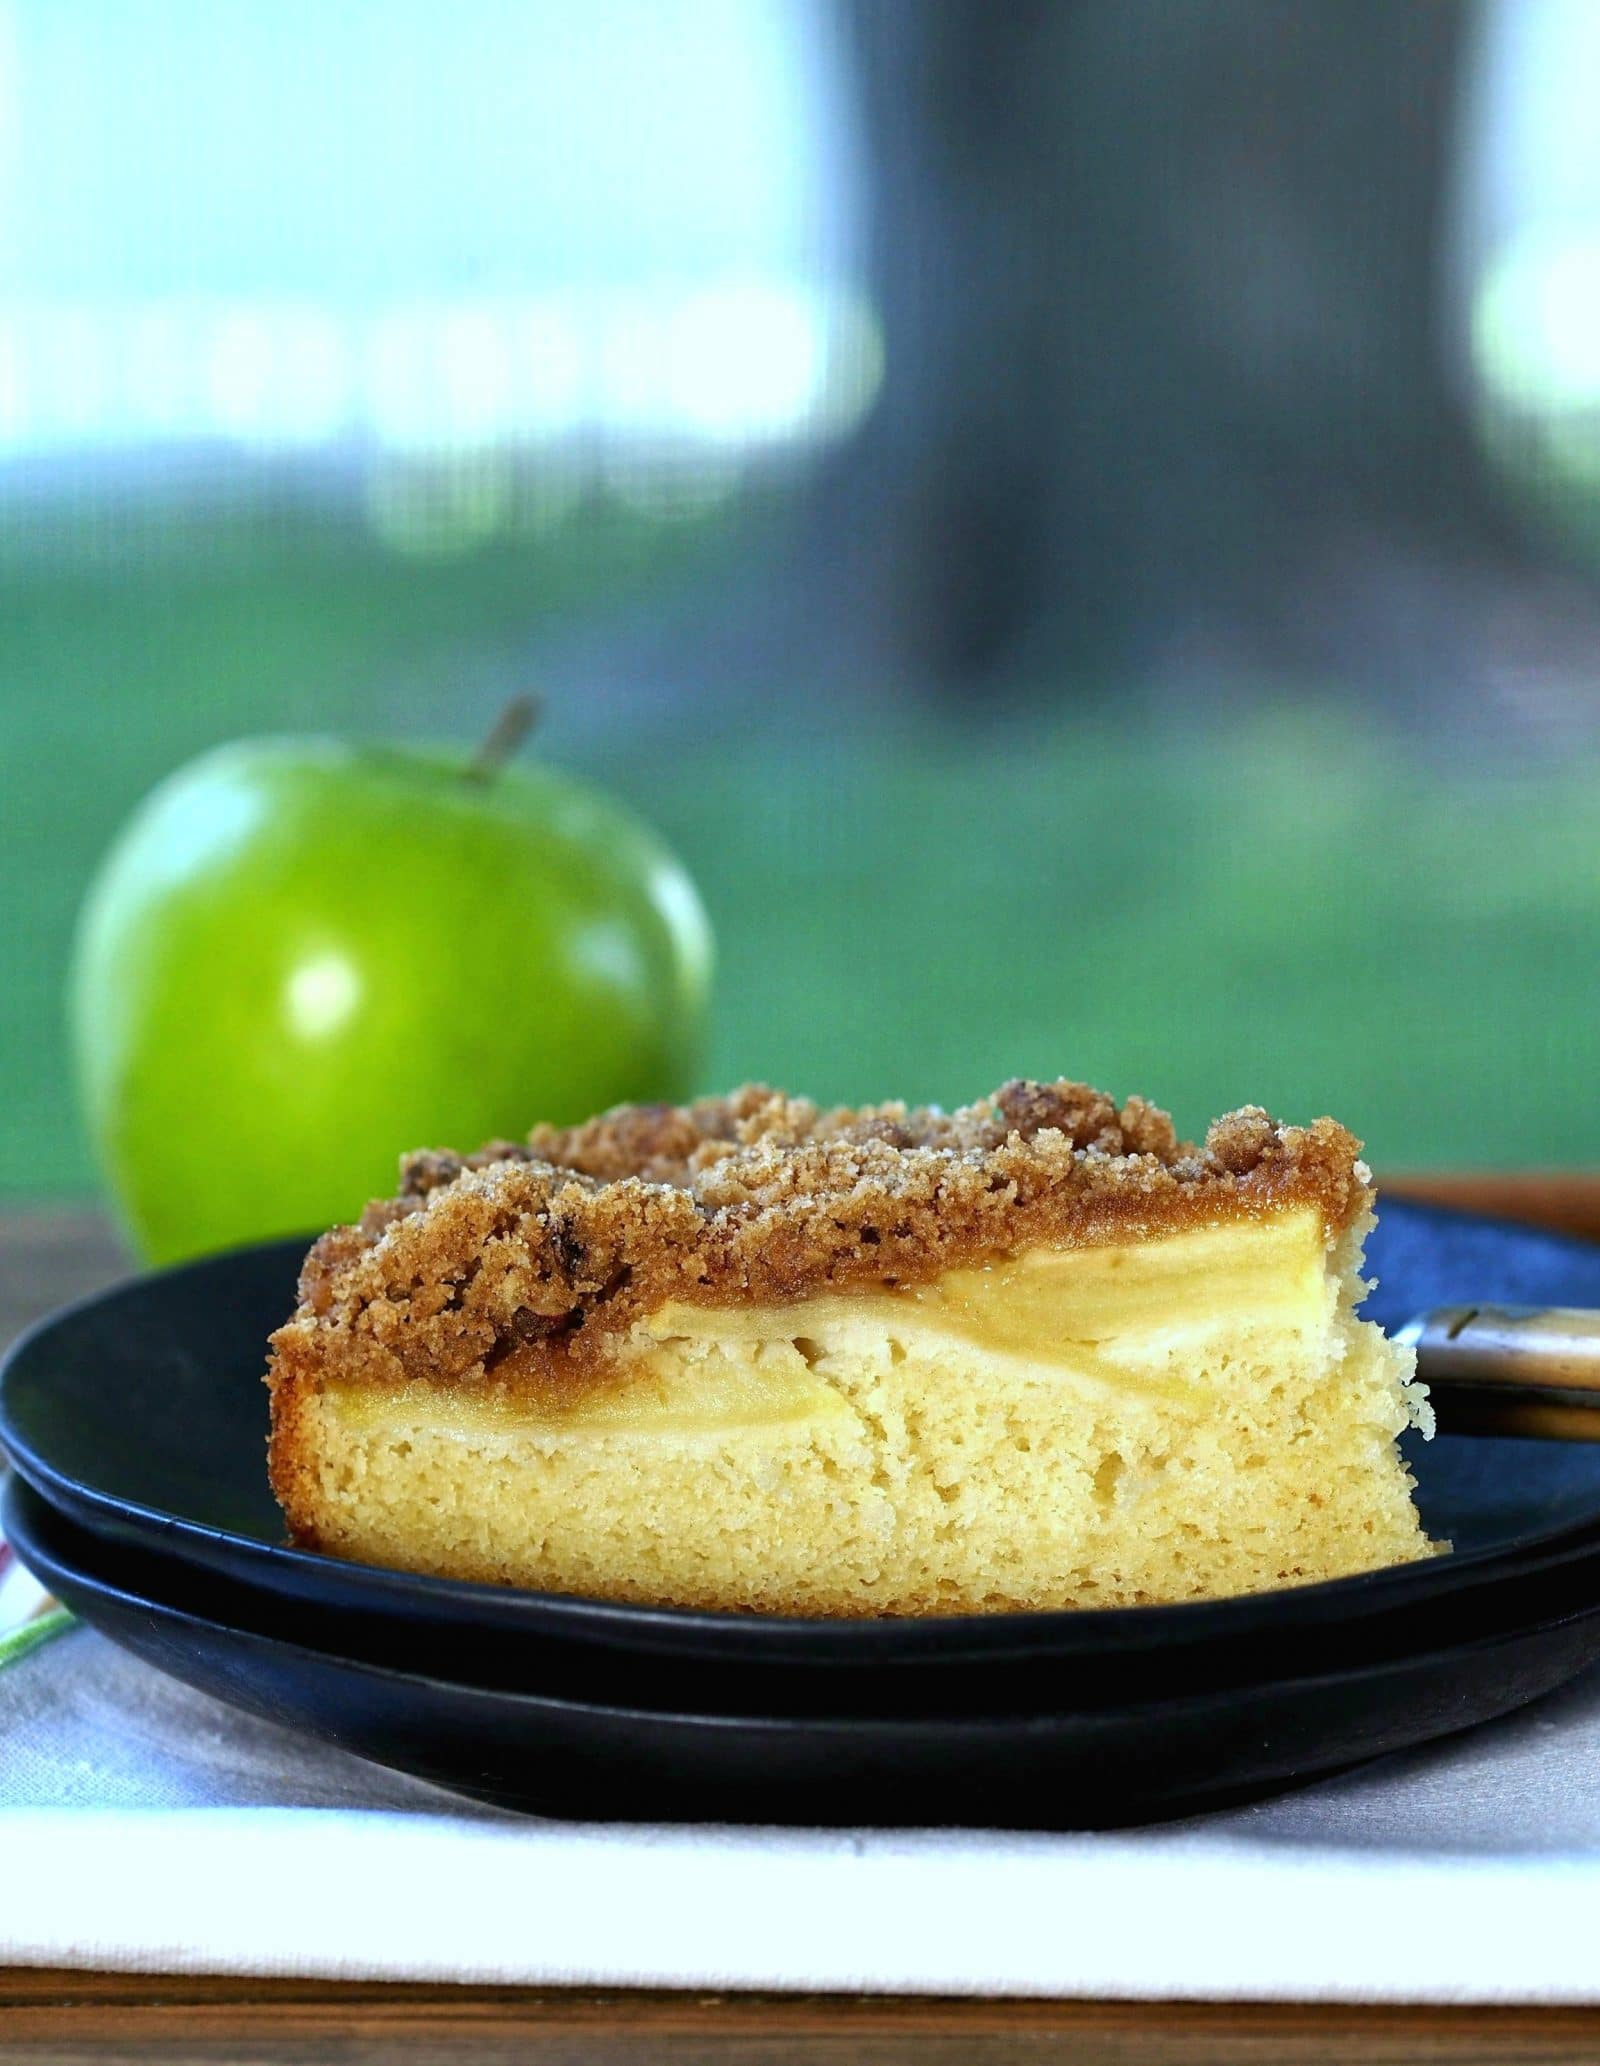 Apple Streusel Cake. Tender cake baked with sliced fresh apples & topped with a cinnamon, pecan, brown sugar streusel. Perfect as a dessert or coffee cake. Simply Sated